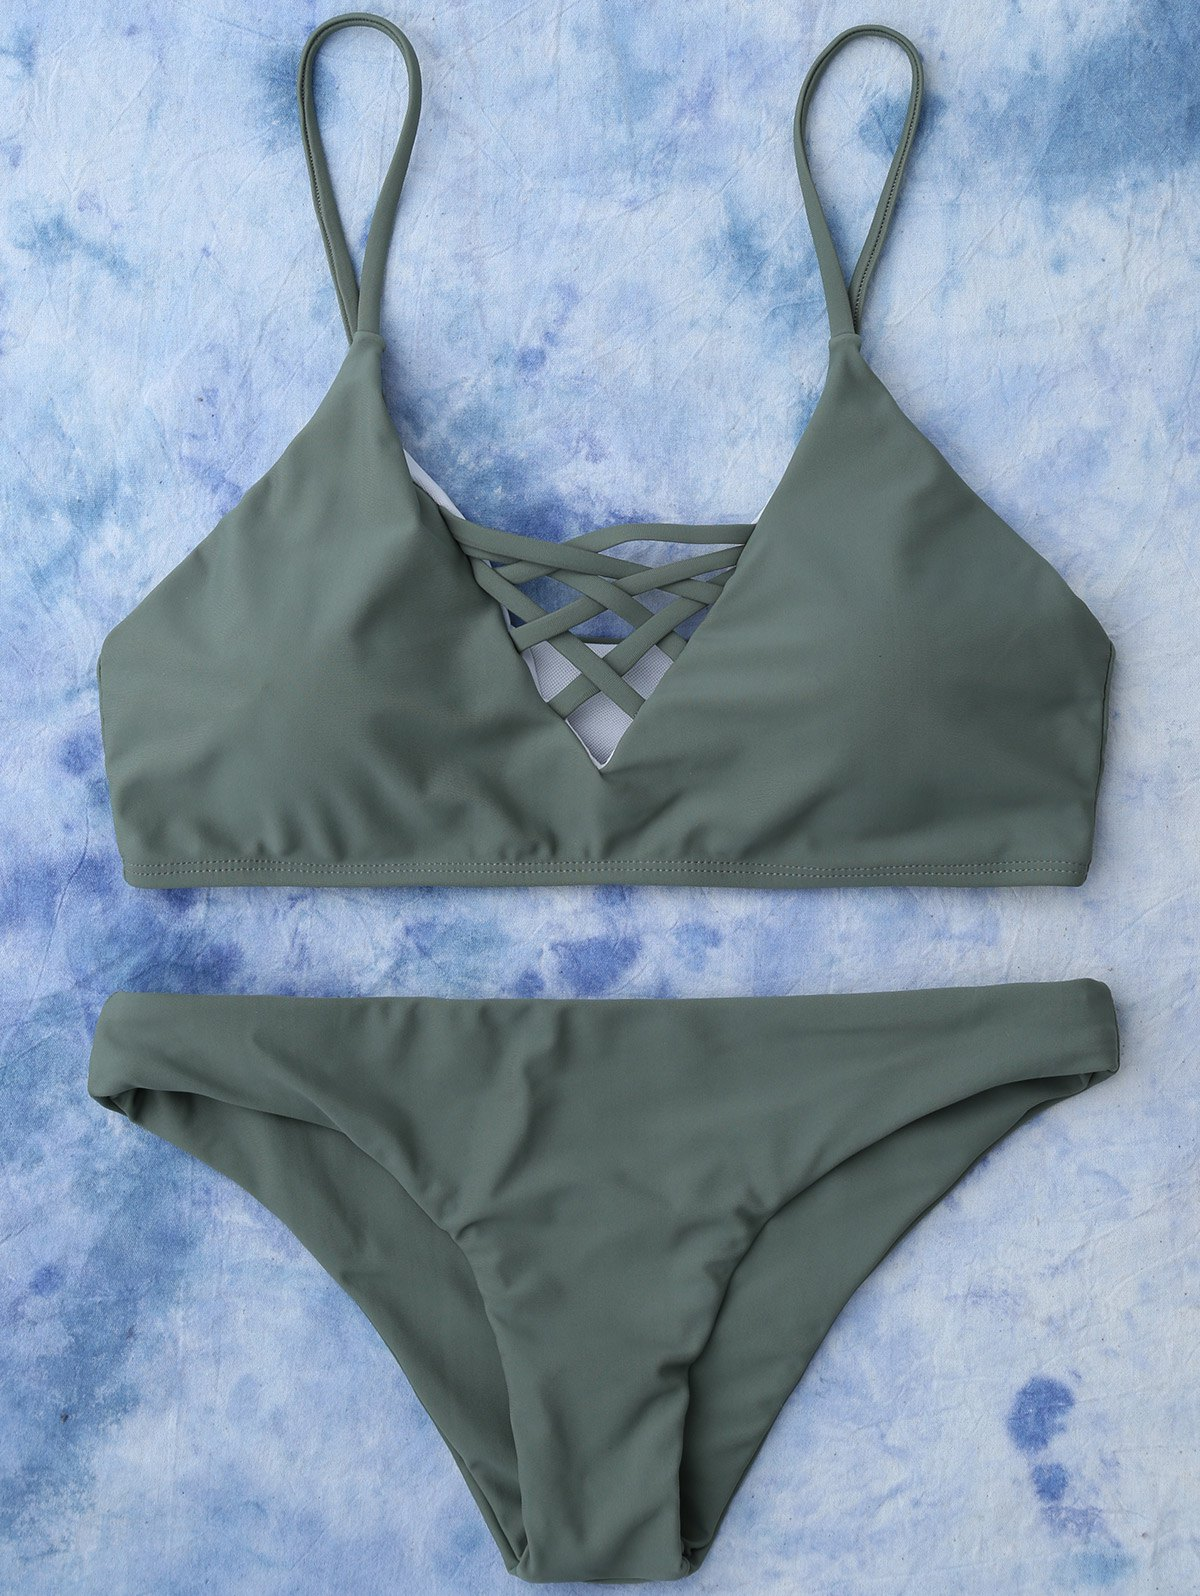 Lace Up Cami Bikini SwimwearWOMEN<br><br>Size: S; Color: ARMY GREEN; Swimwear Type: Bikini; Gender: For Women; Material: Nylon,Polyester,Spandex; Bra Style: Padded; Support Type: Wire Free; Neckline: Spaghetti Straps; Pattern Type: Solid; Waist: Low Waisted; Elasticity: Elastic; Weight: 0.2000kg; Package Contents: 1 x Top  1 x Bottoms;